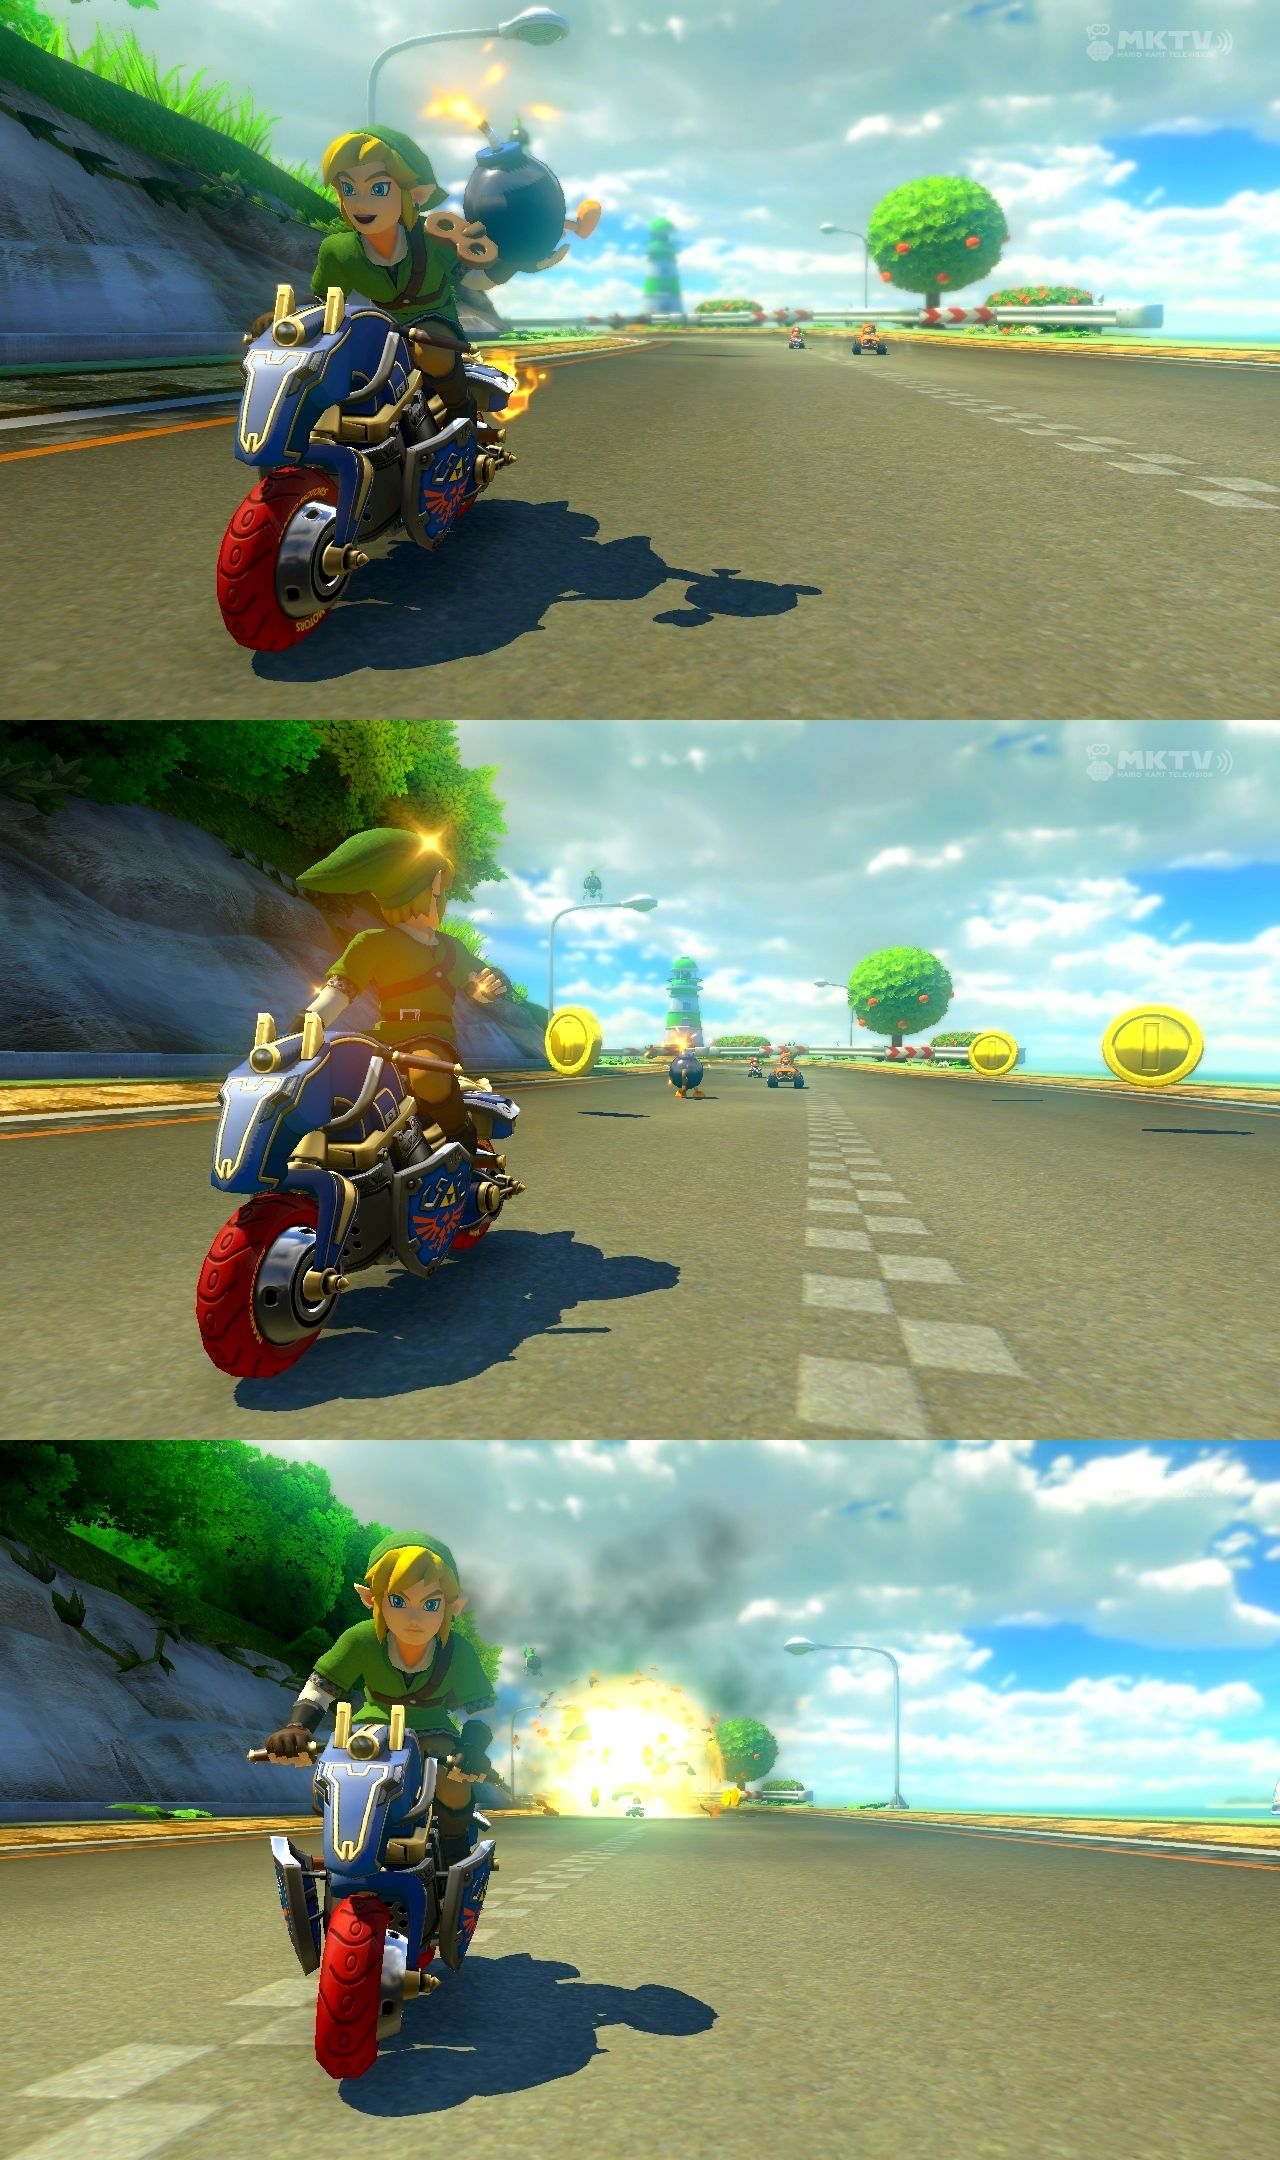 Link Already Know How To Deal With Bombs In Wiiu Mario Kart 8 Dlc He S On A Motorcycle Sweet Legend Of Zelda Mario Kart Mario Kart 8